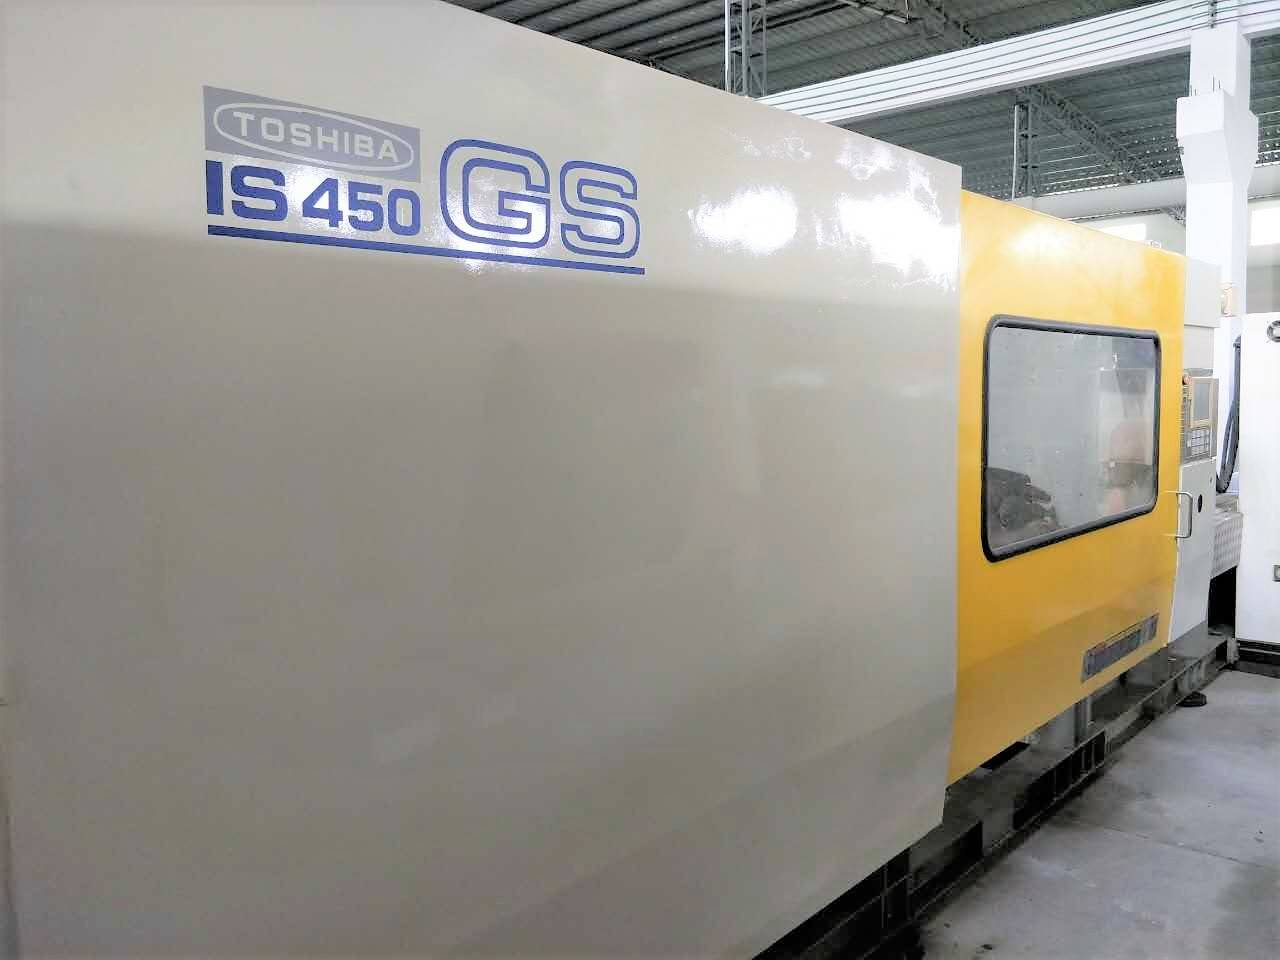 Toshiba IS450GS Used Injection Molding Machine Featured Image